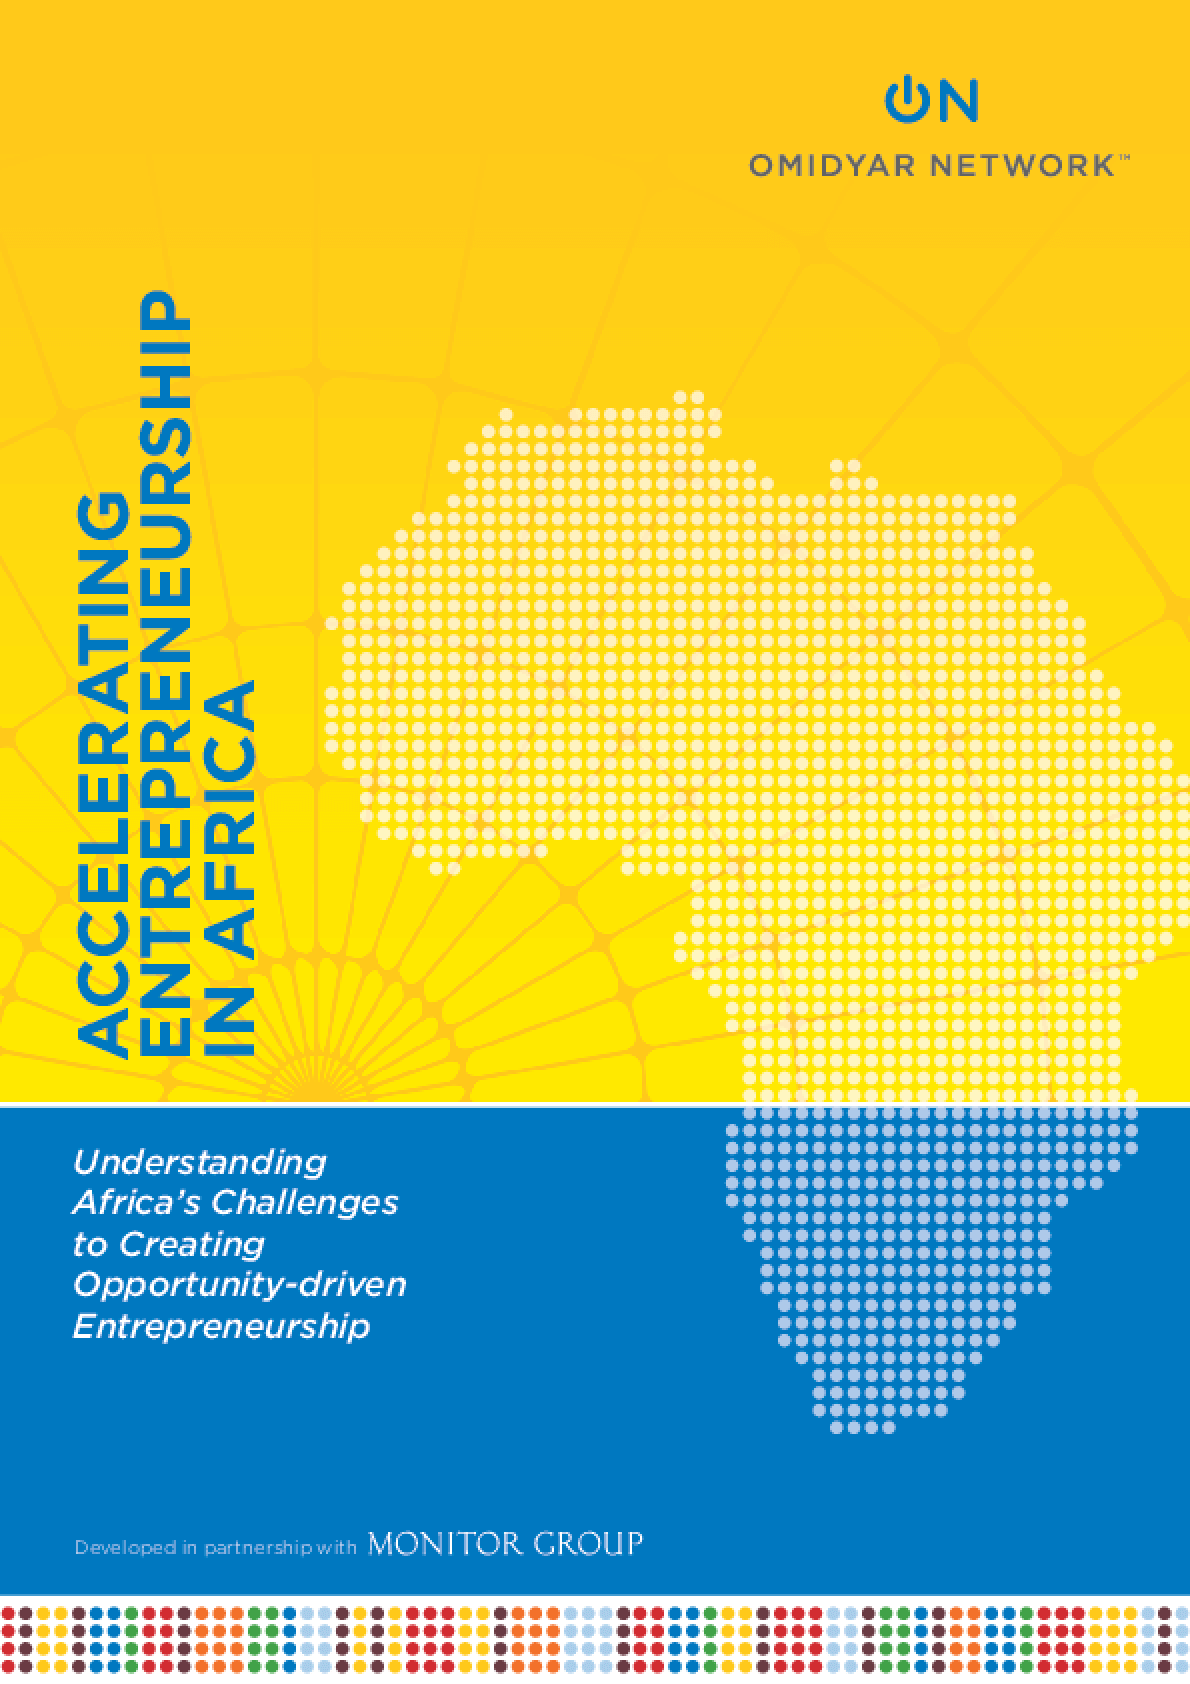 Accelerating Entrepreneurship in Africa: Understanding Africa's Challenges to Creating Opportunity-Driven Entrepreneurship